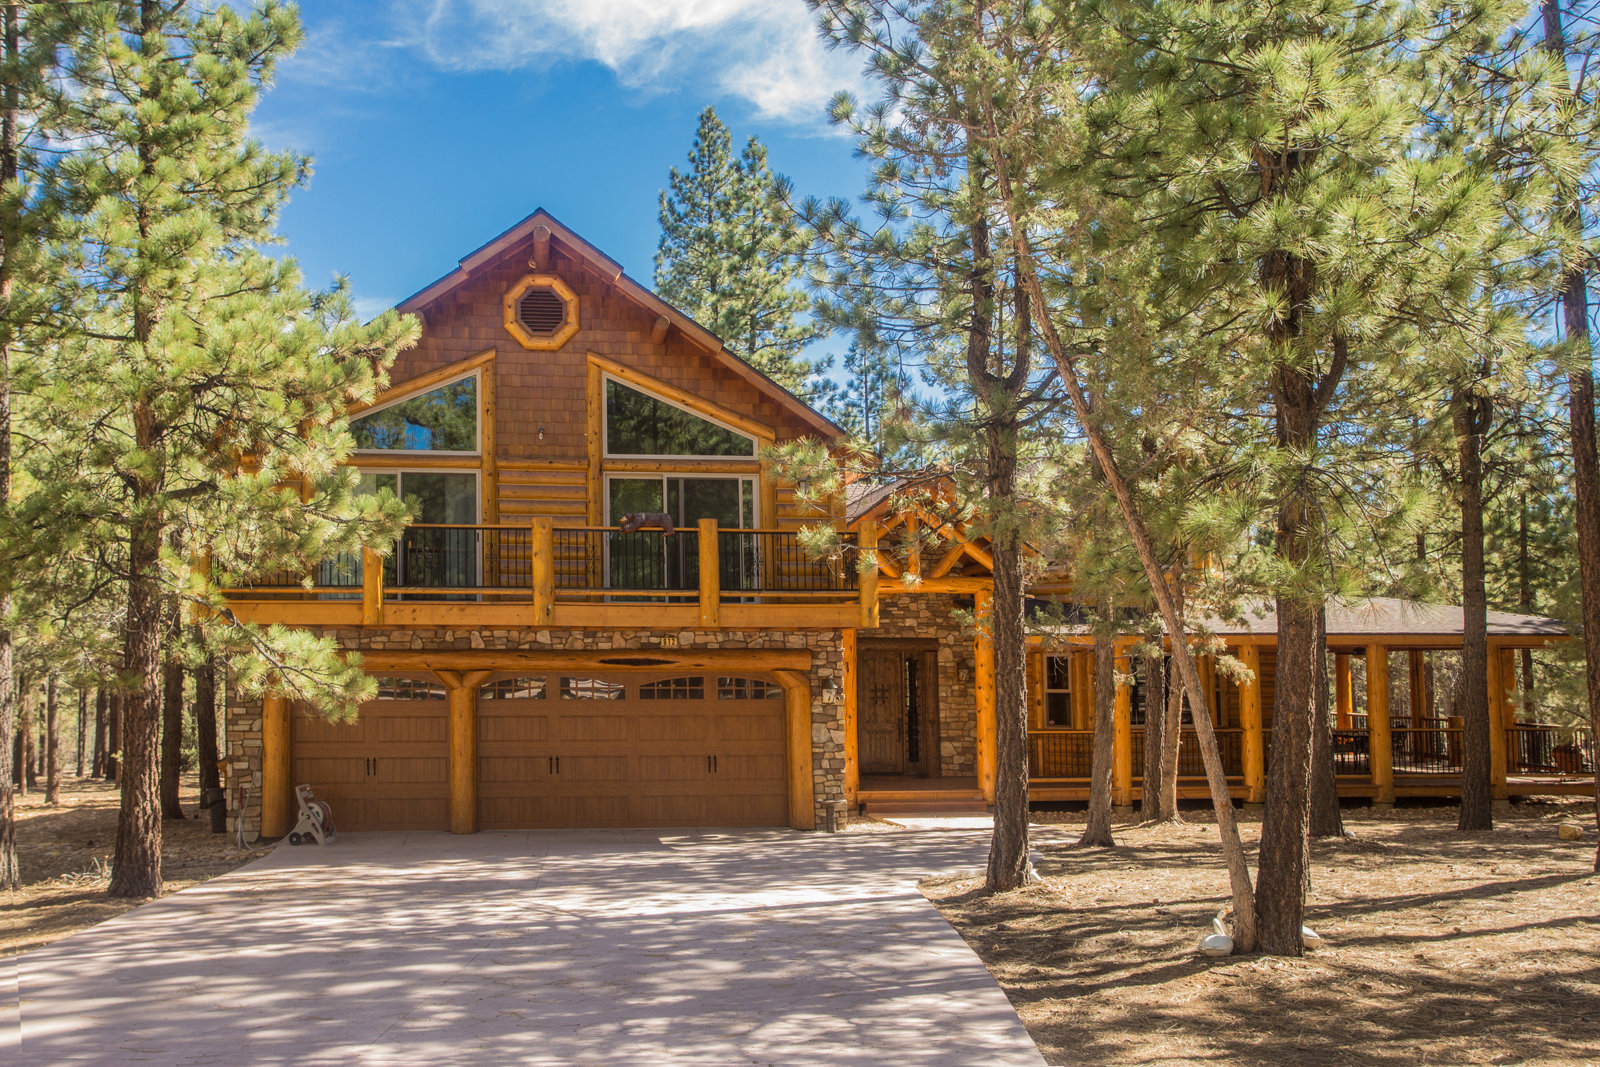 Mike wochner 909 633 2558 re max your premier real Big bear cabins california